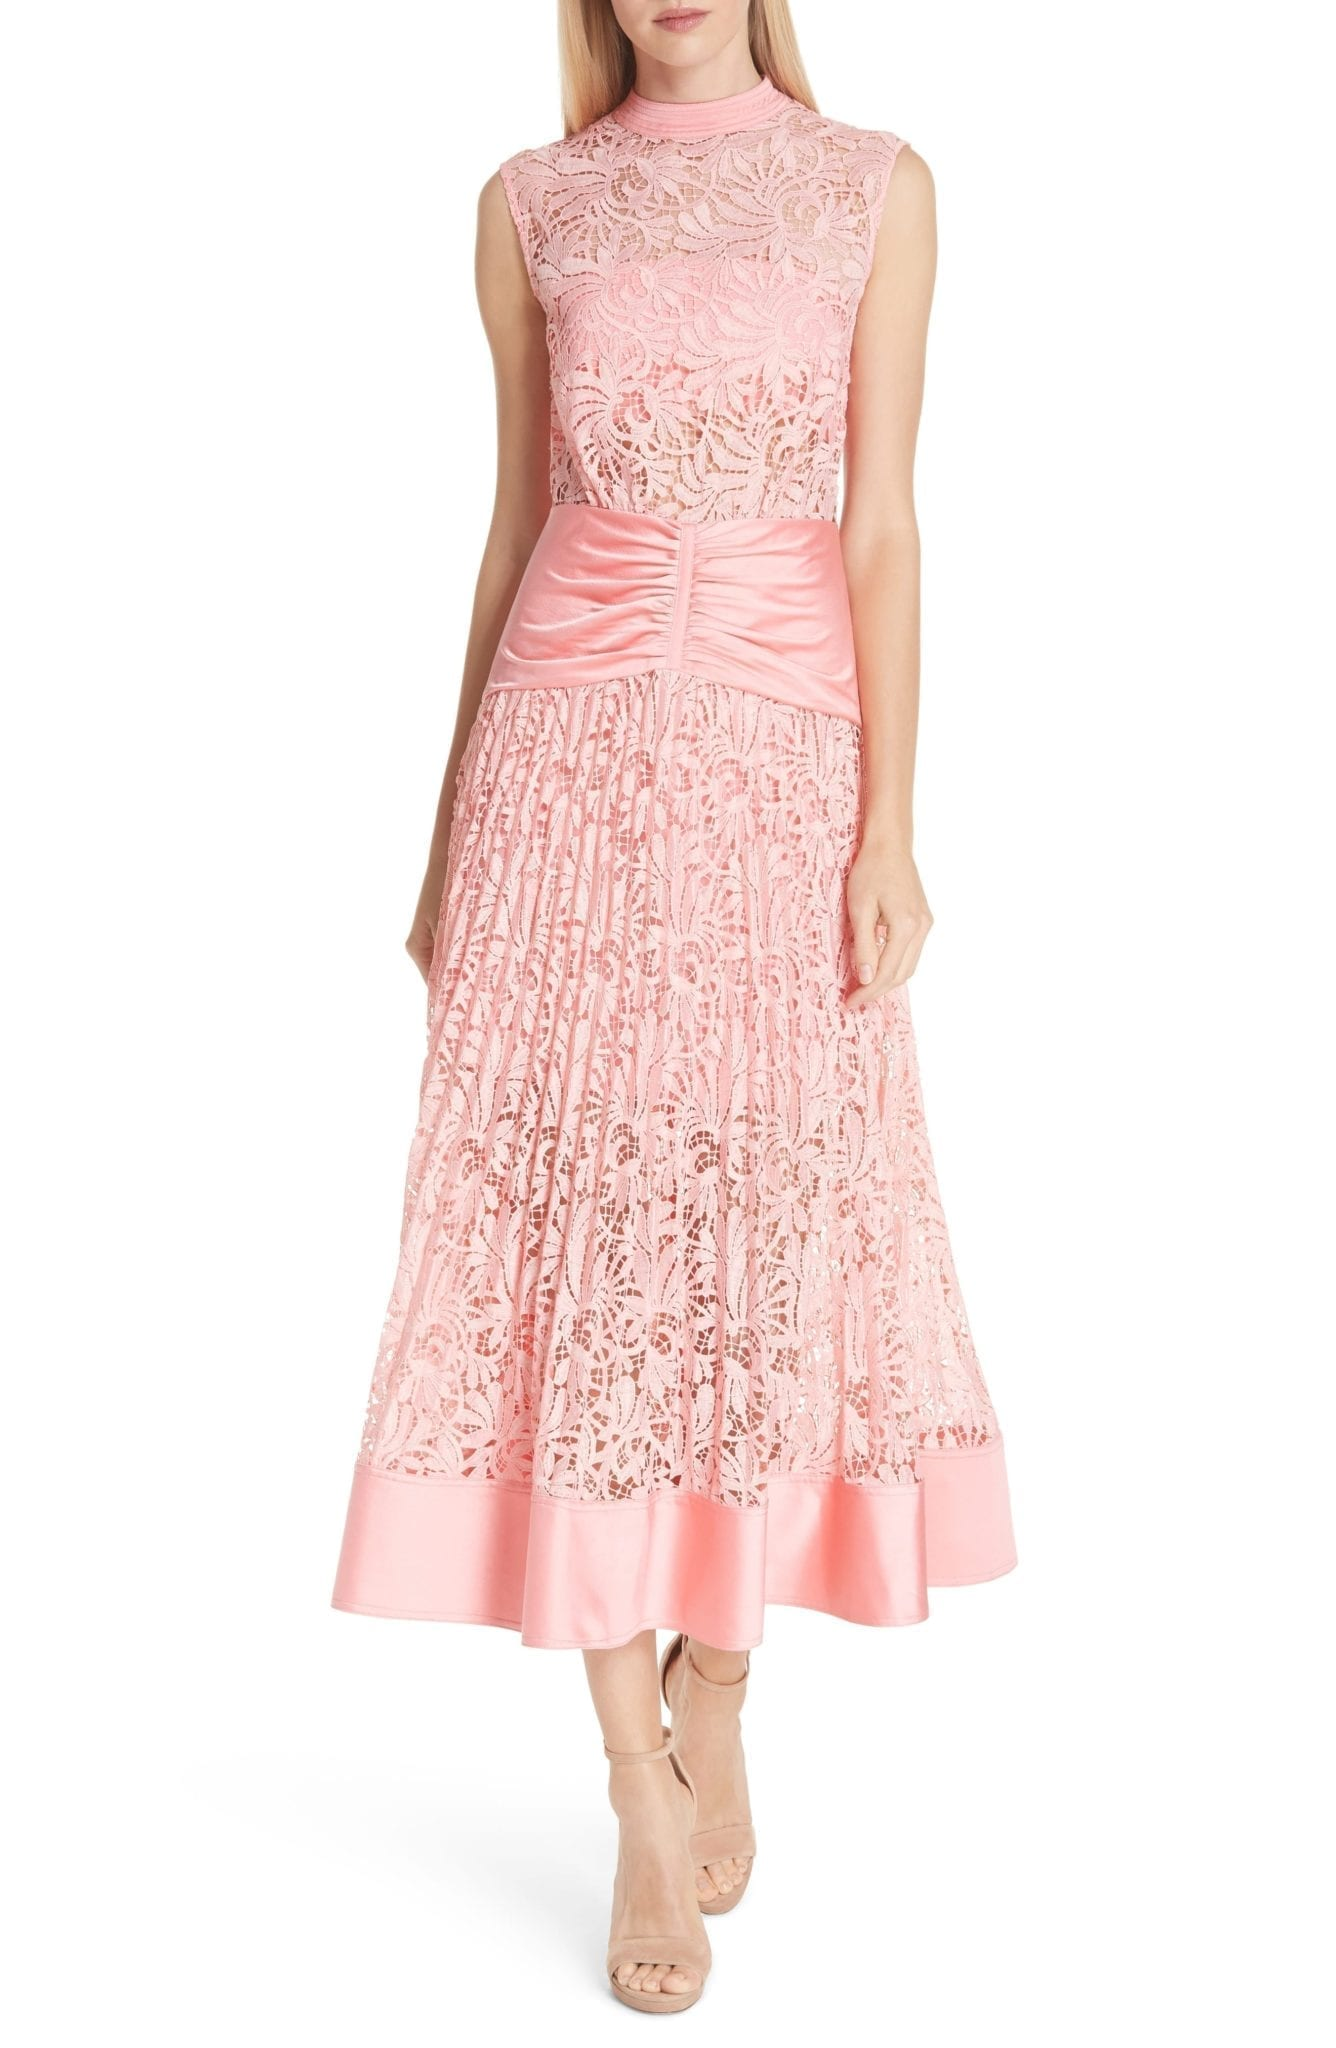 ce479b40a6524 SELF-PORTRAIT Floral Lace Sleeveless Midi Pink Dress - We Select Dresses